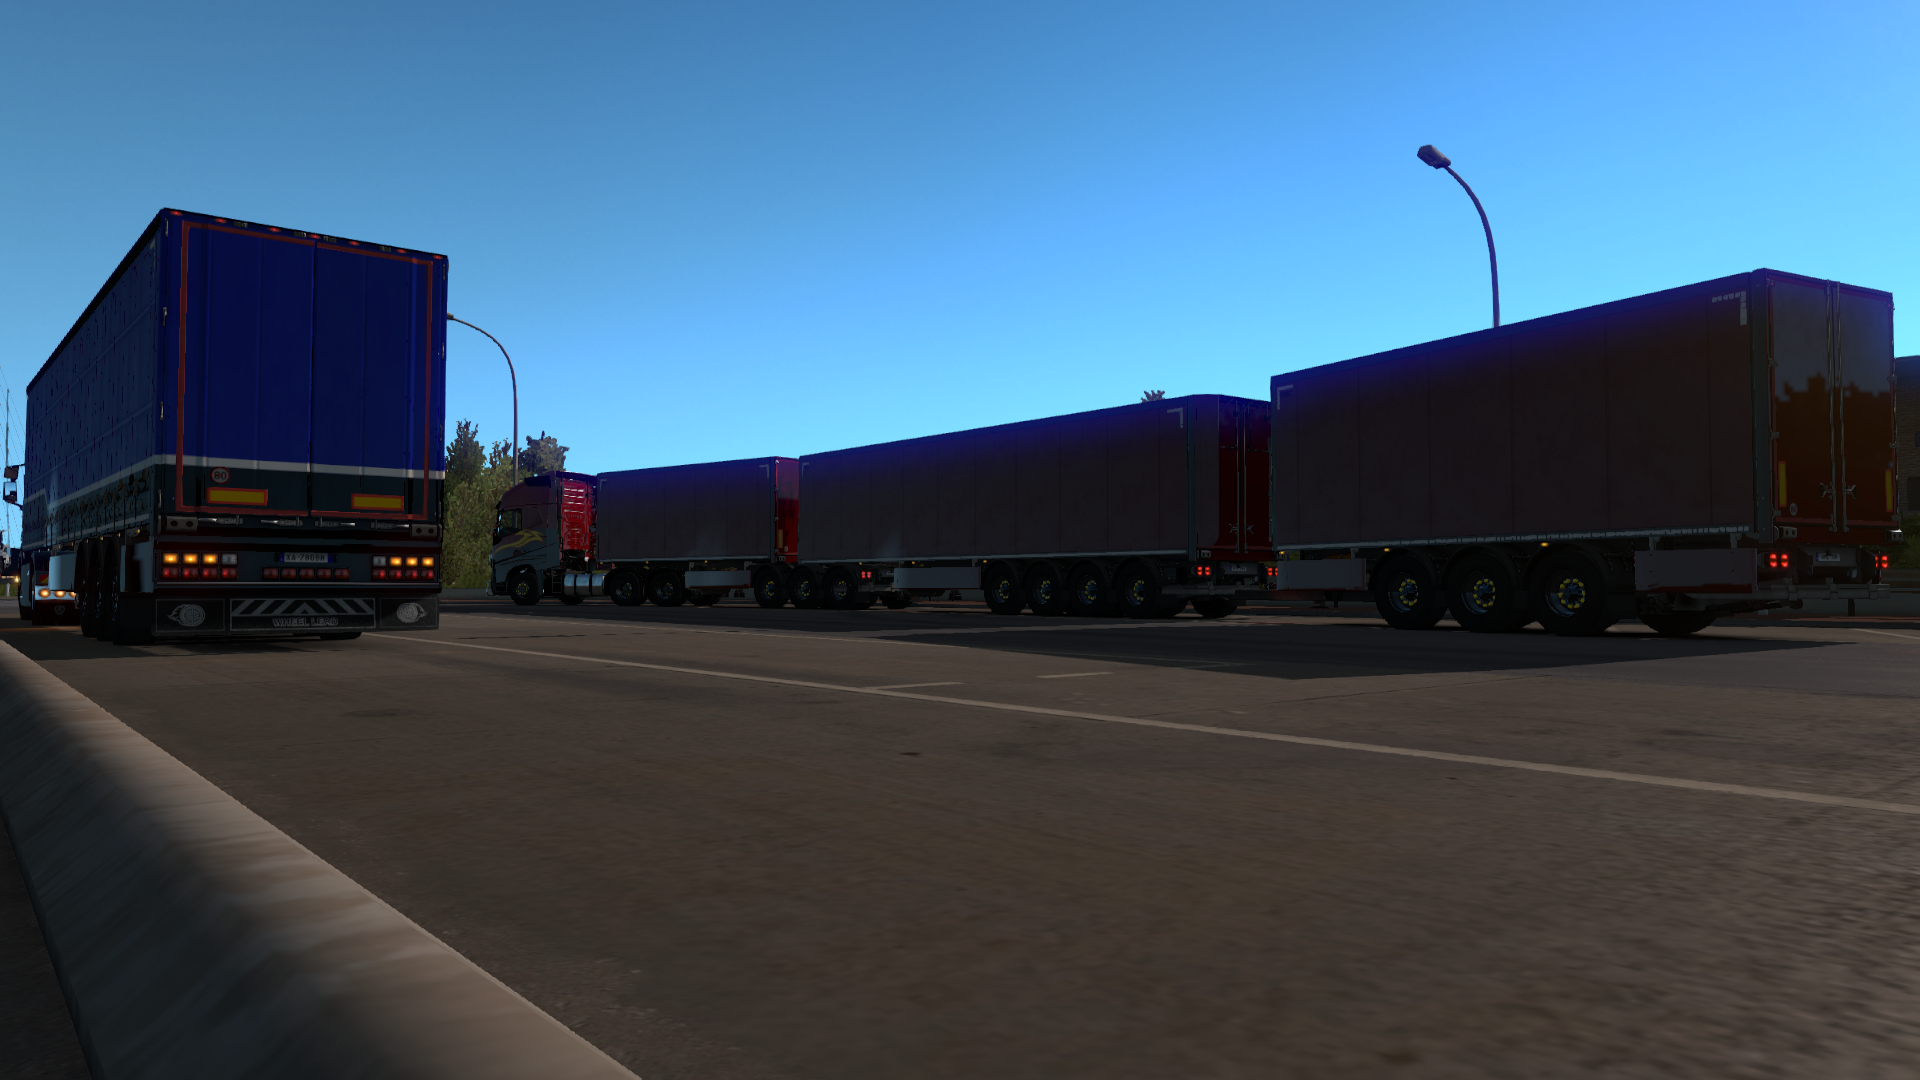 ets2_20190323_220753_00.png